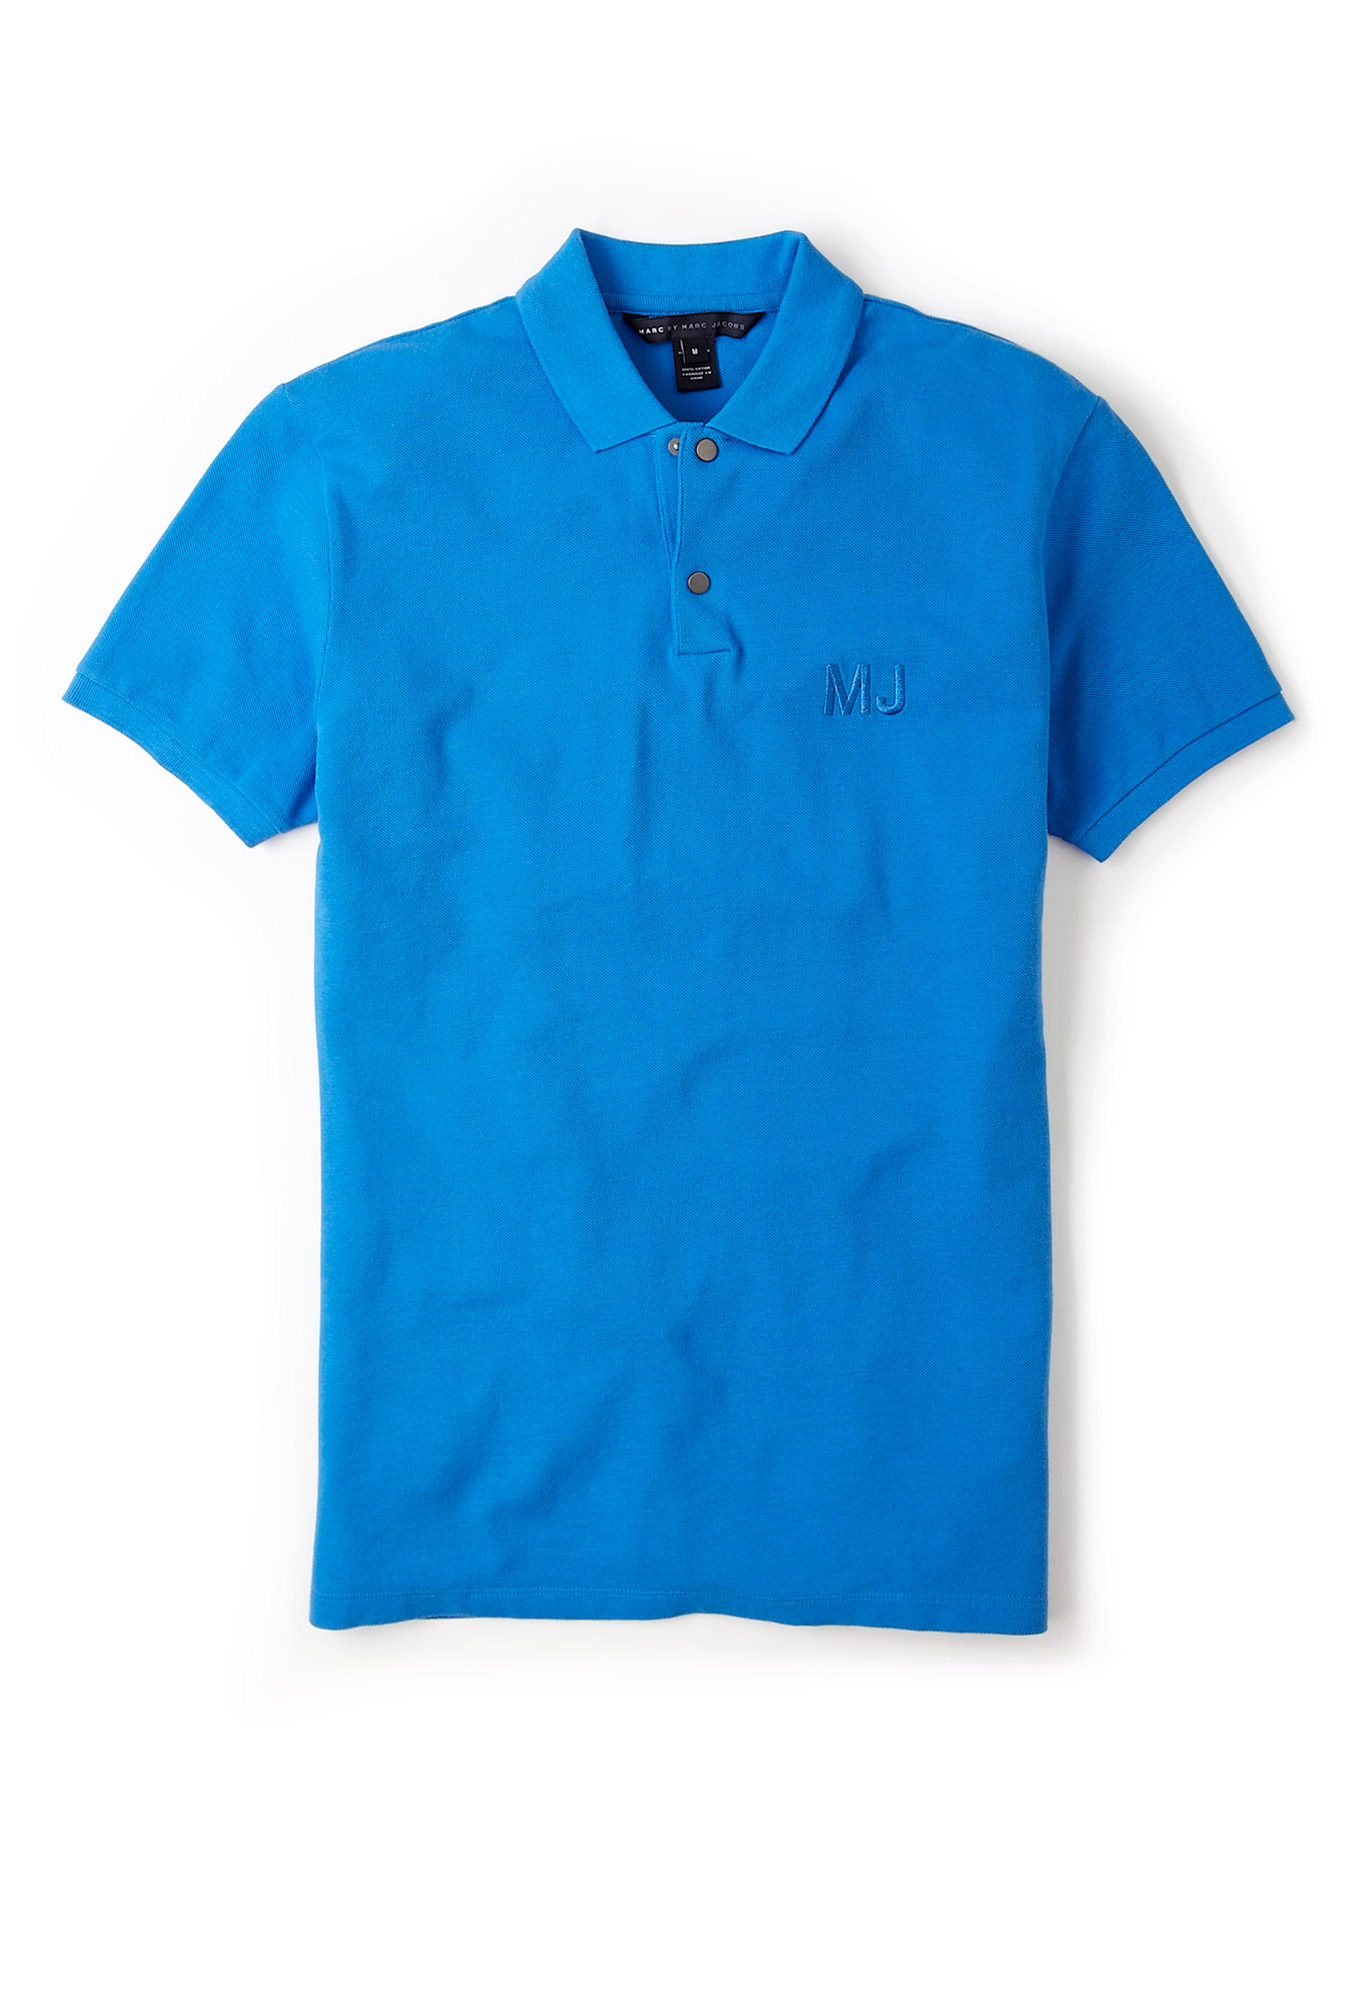 Marc by marc jacobs blue embroidered logo polo shirt in for Logo embroidered polo shirts